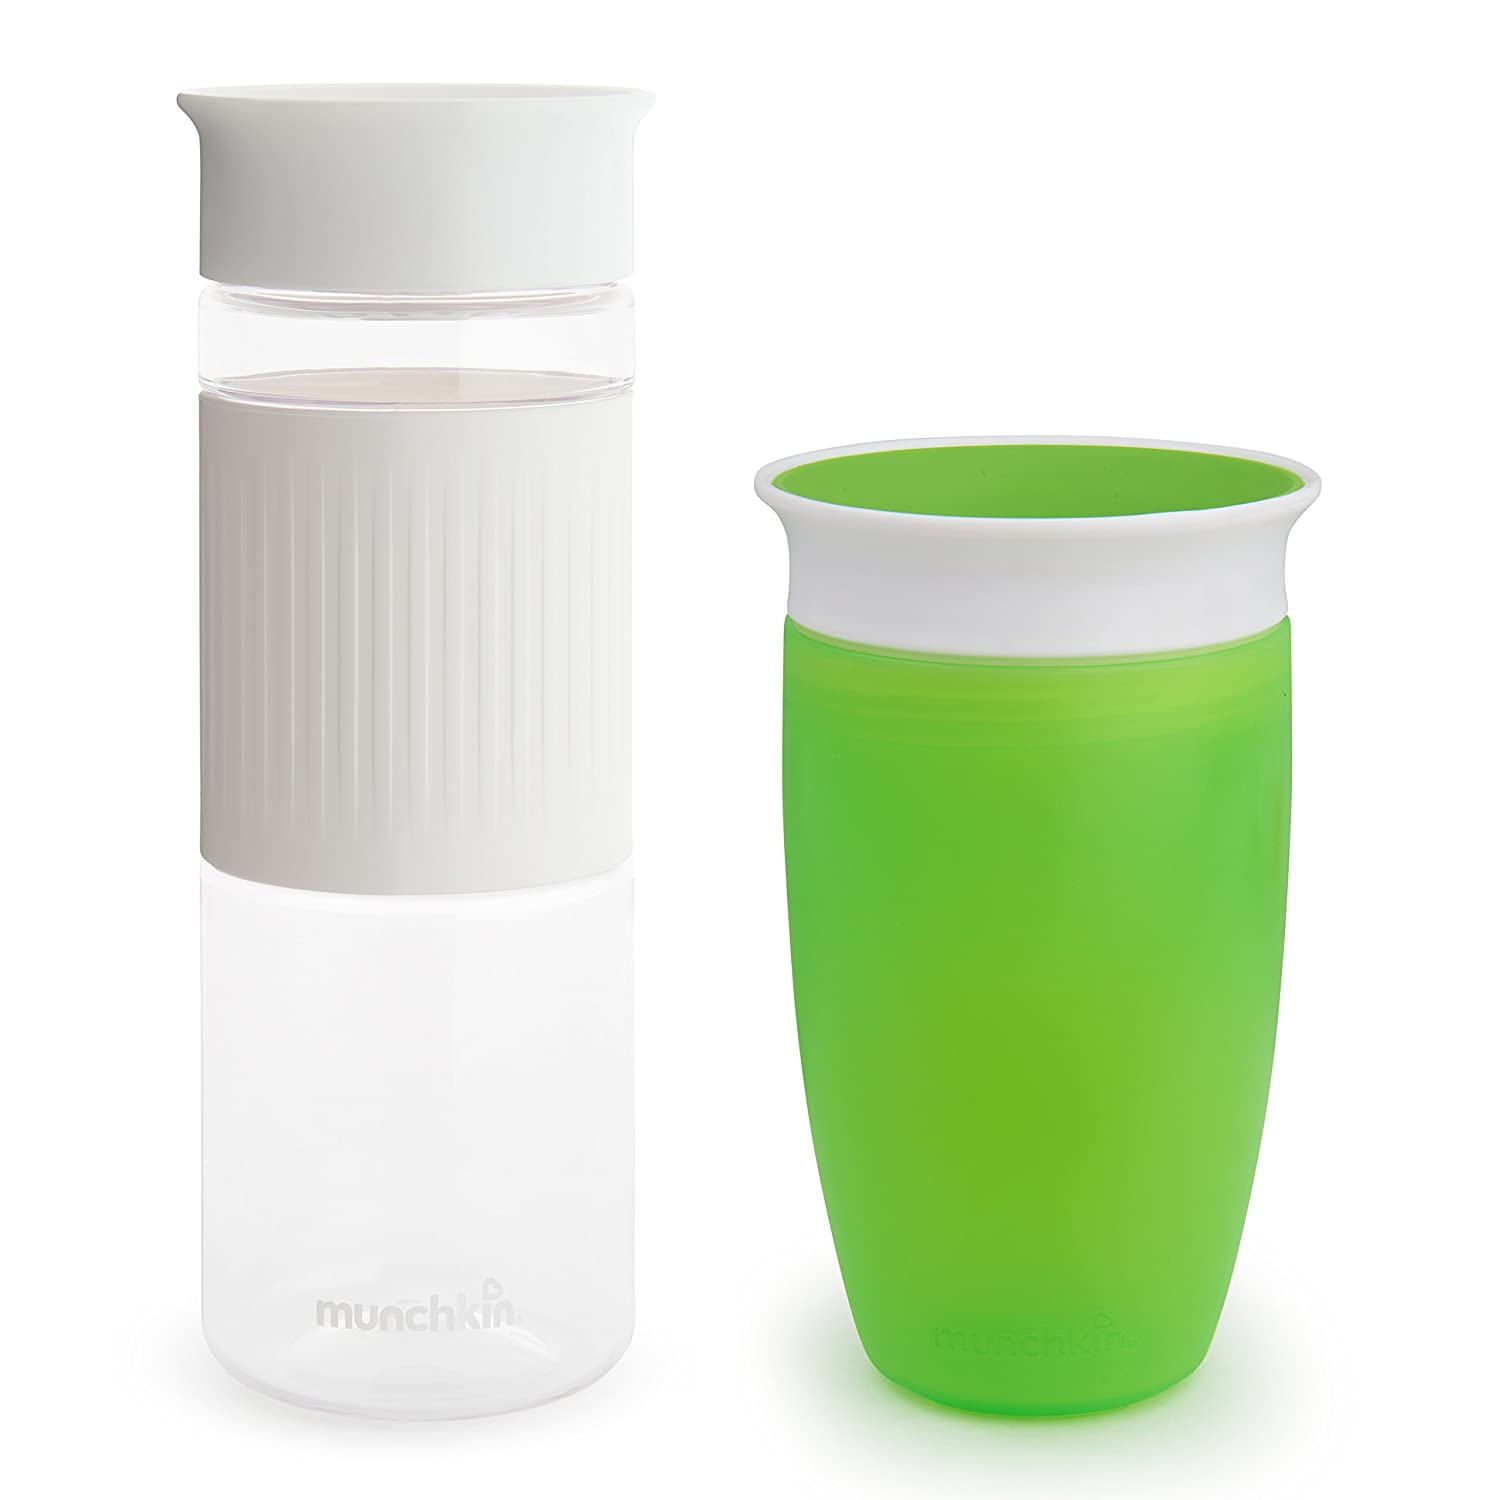 Munchkin Miracle 360 Hydration Set, 2 Pack, 24 Ounce and 10 Ounce, Green and White